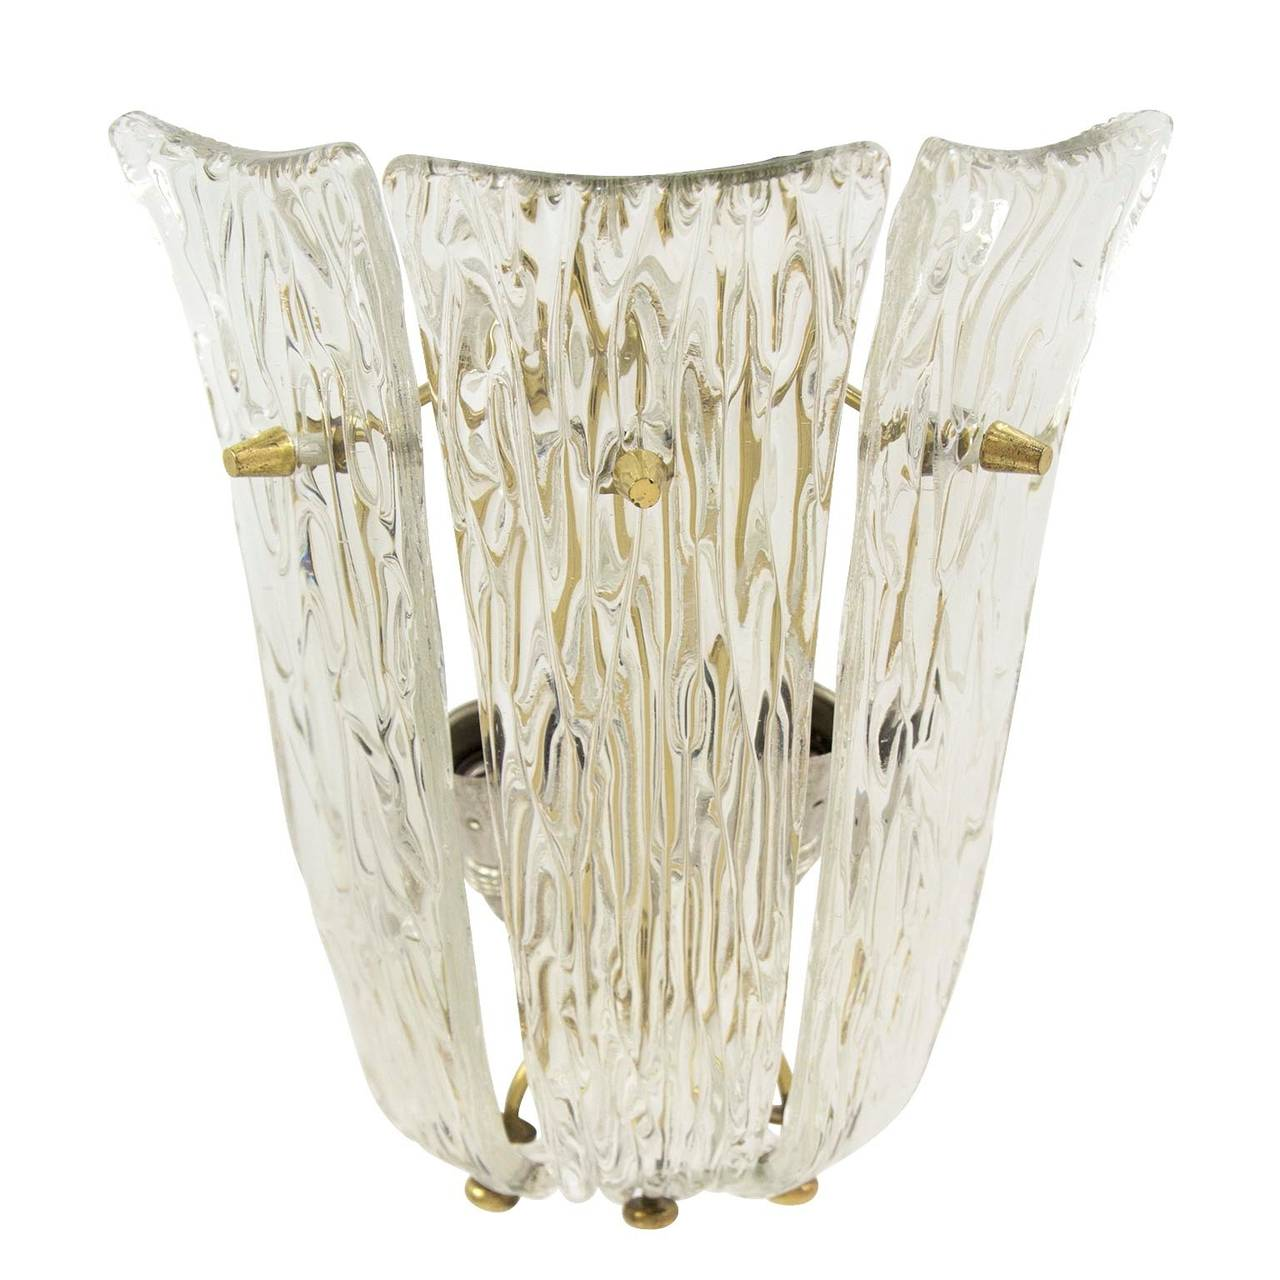 Austrian One of Three Textured Glass And Brass Wall Sconces by J.T. Kalmar, 1950s For Sale